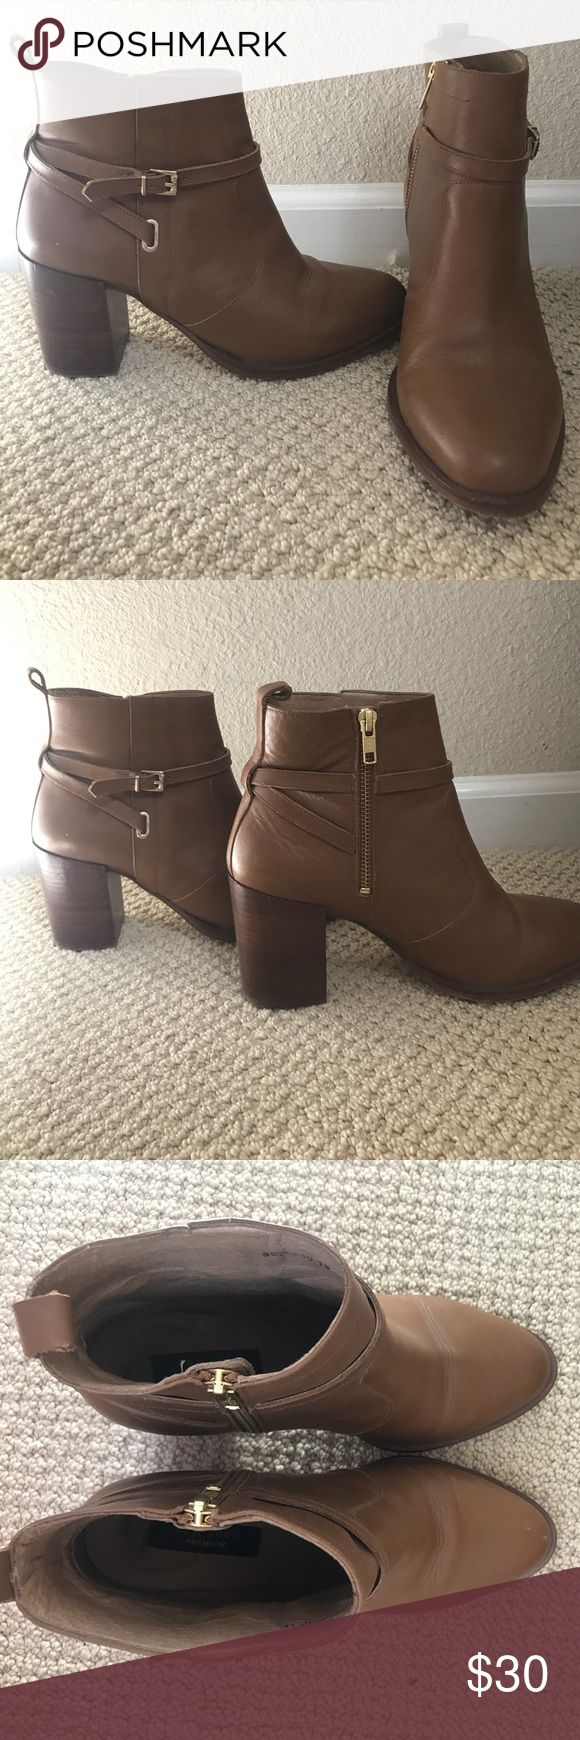 New Look Premium tan heeled booties Tan, heeled, booties with a zipper on the side. I have worn them a couple of times, but my feet are just barely too big for them. Size EU 40 UK 7 New Look Shoes Ankle Boots & Booties